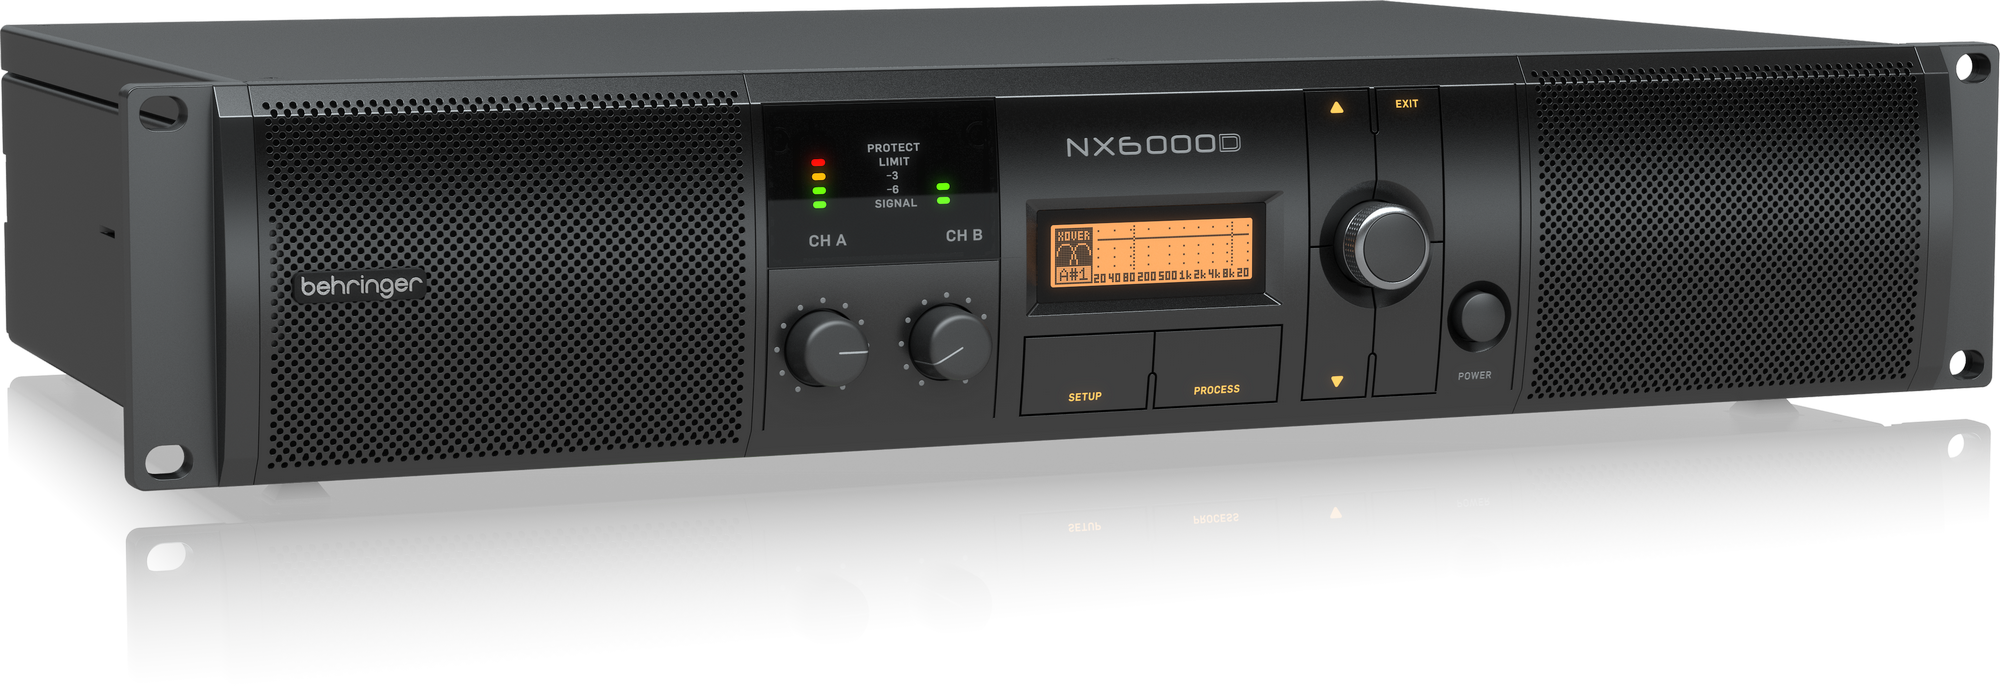 Behringer NX6000D - Power Amplifier